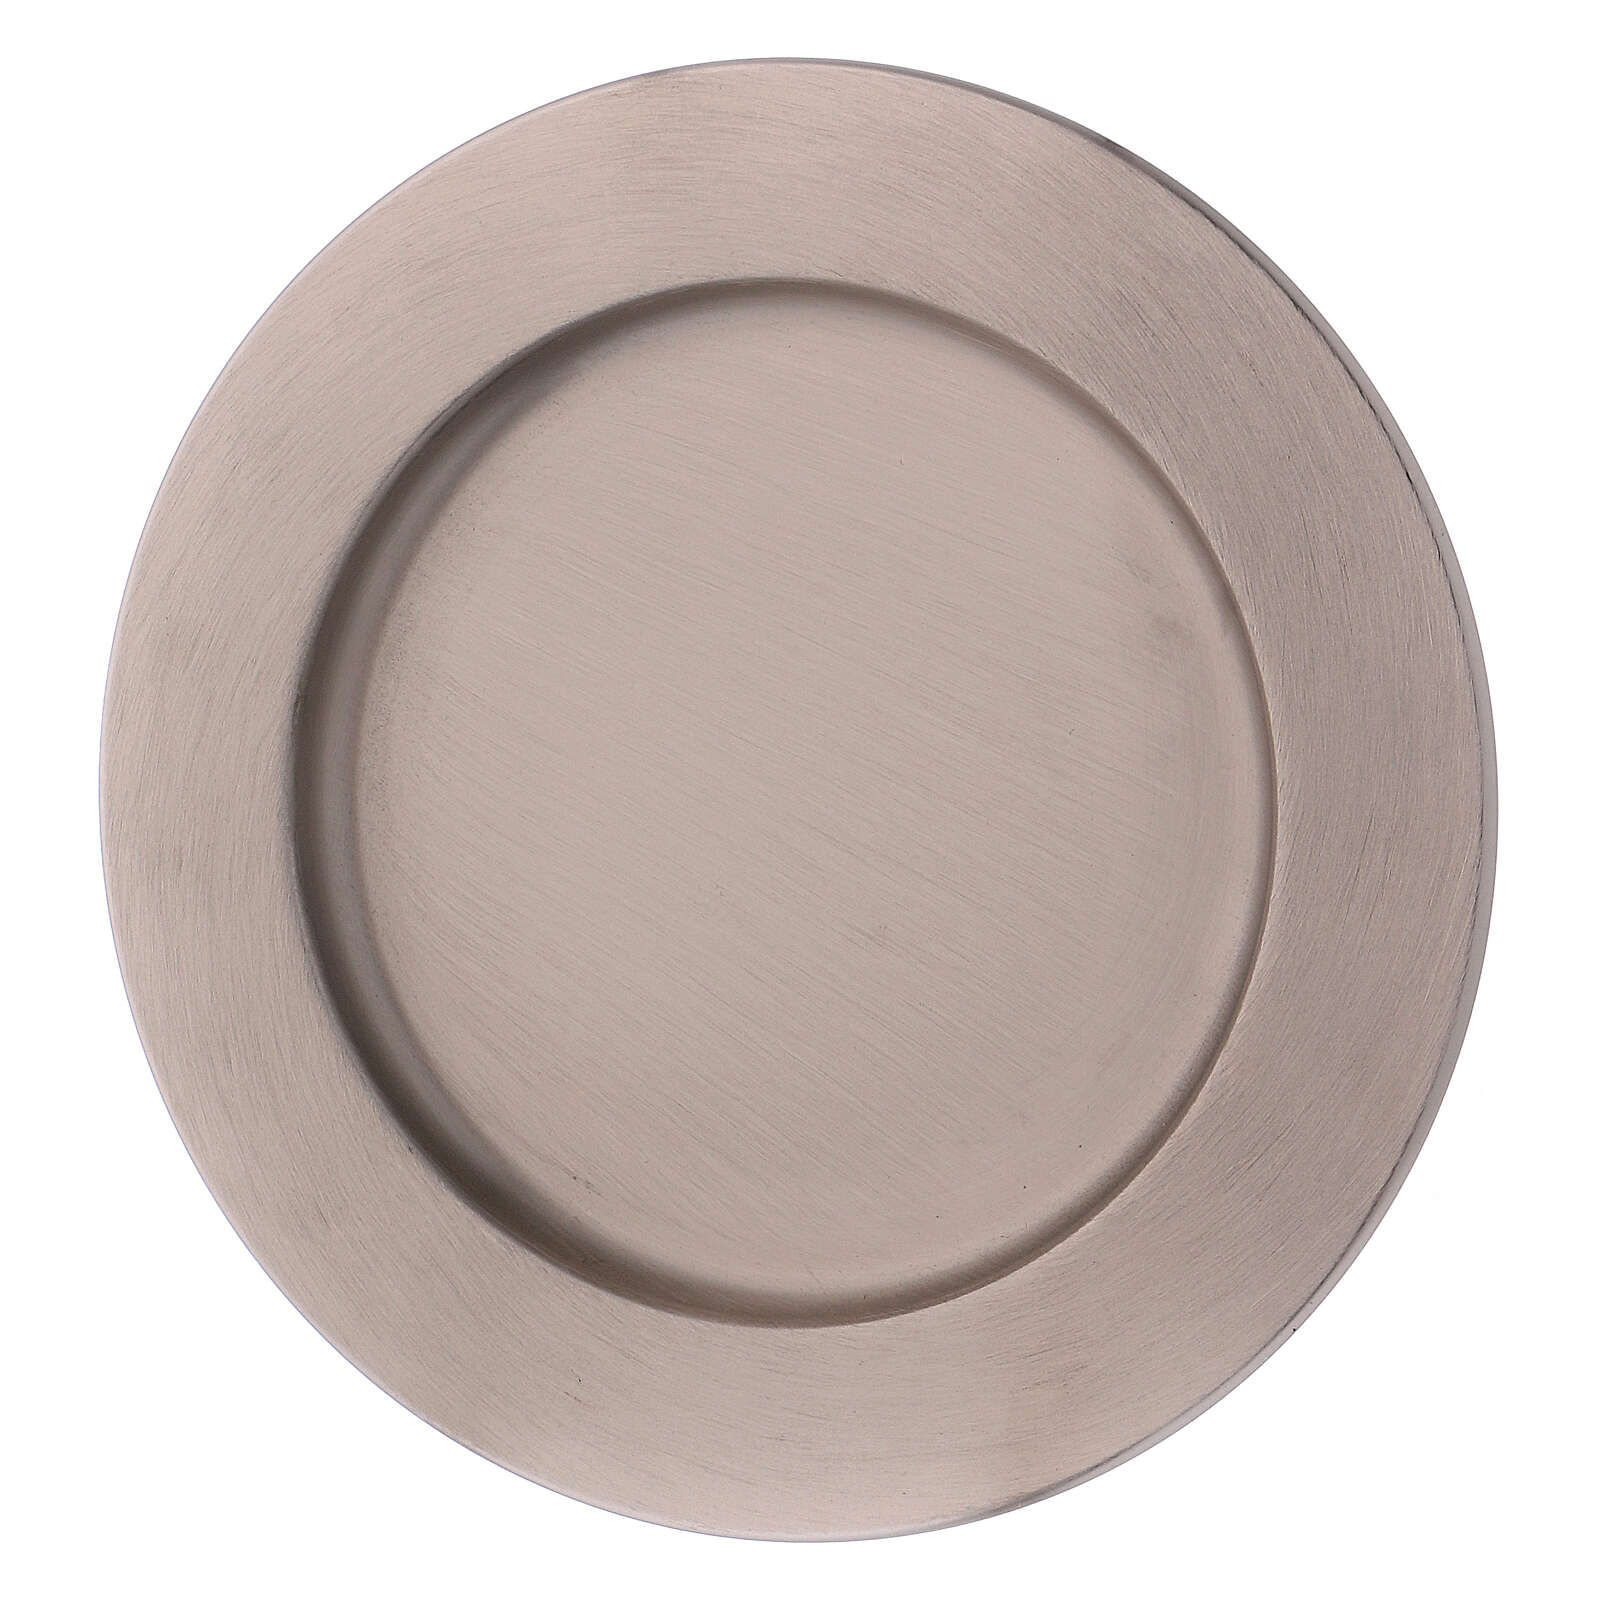 Candle holder plate in silver-plated brass diam. 6 3/4 in 3